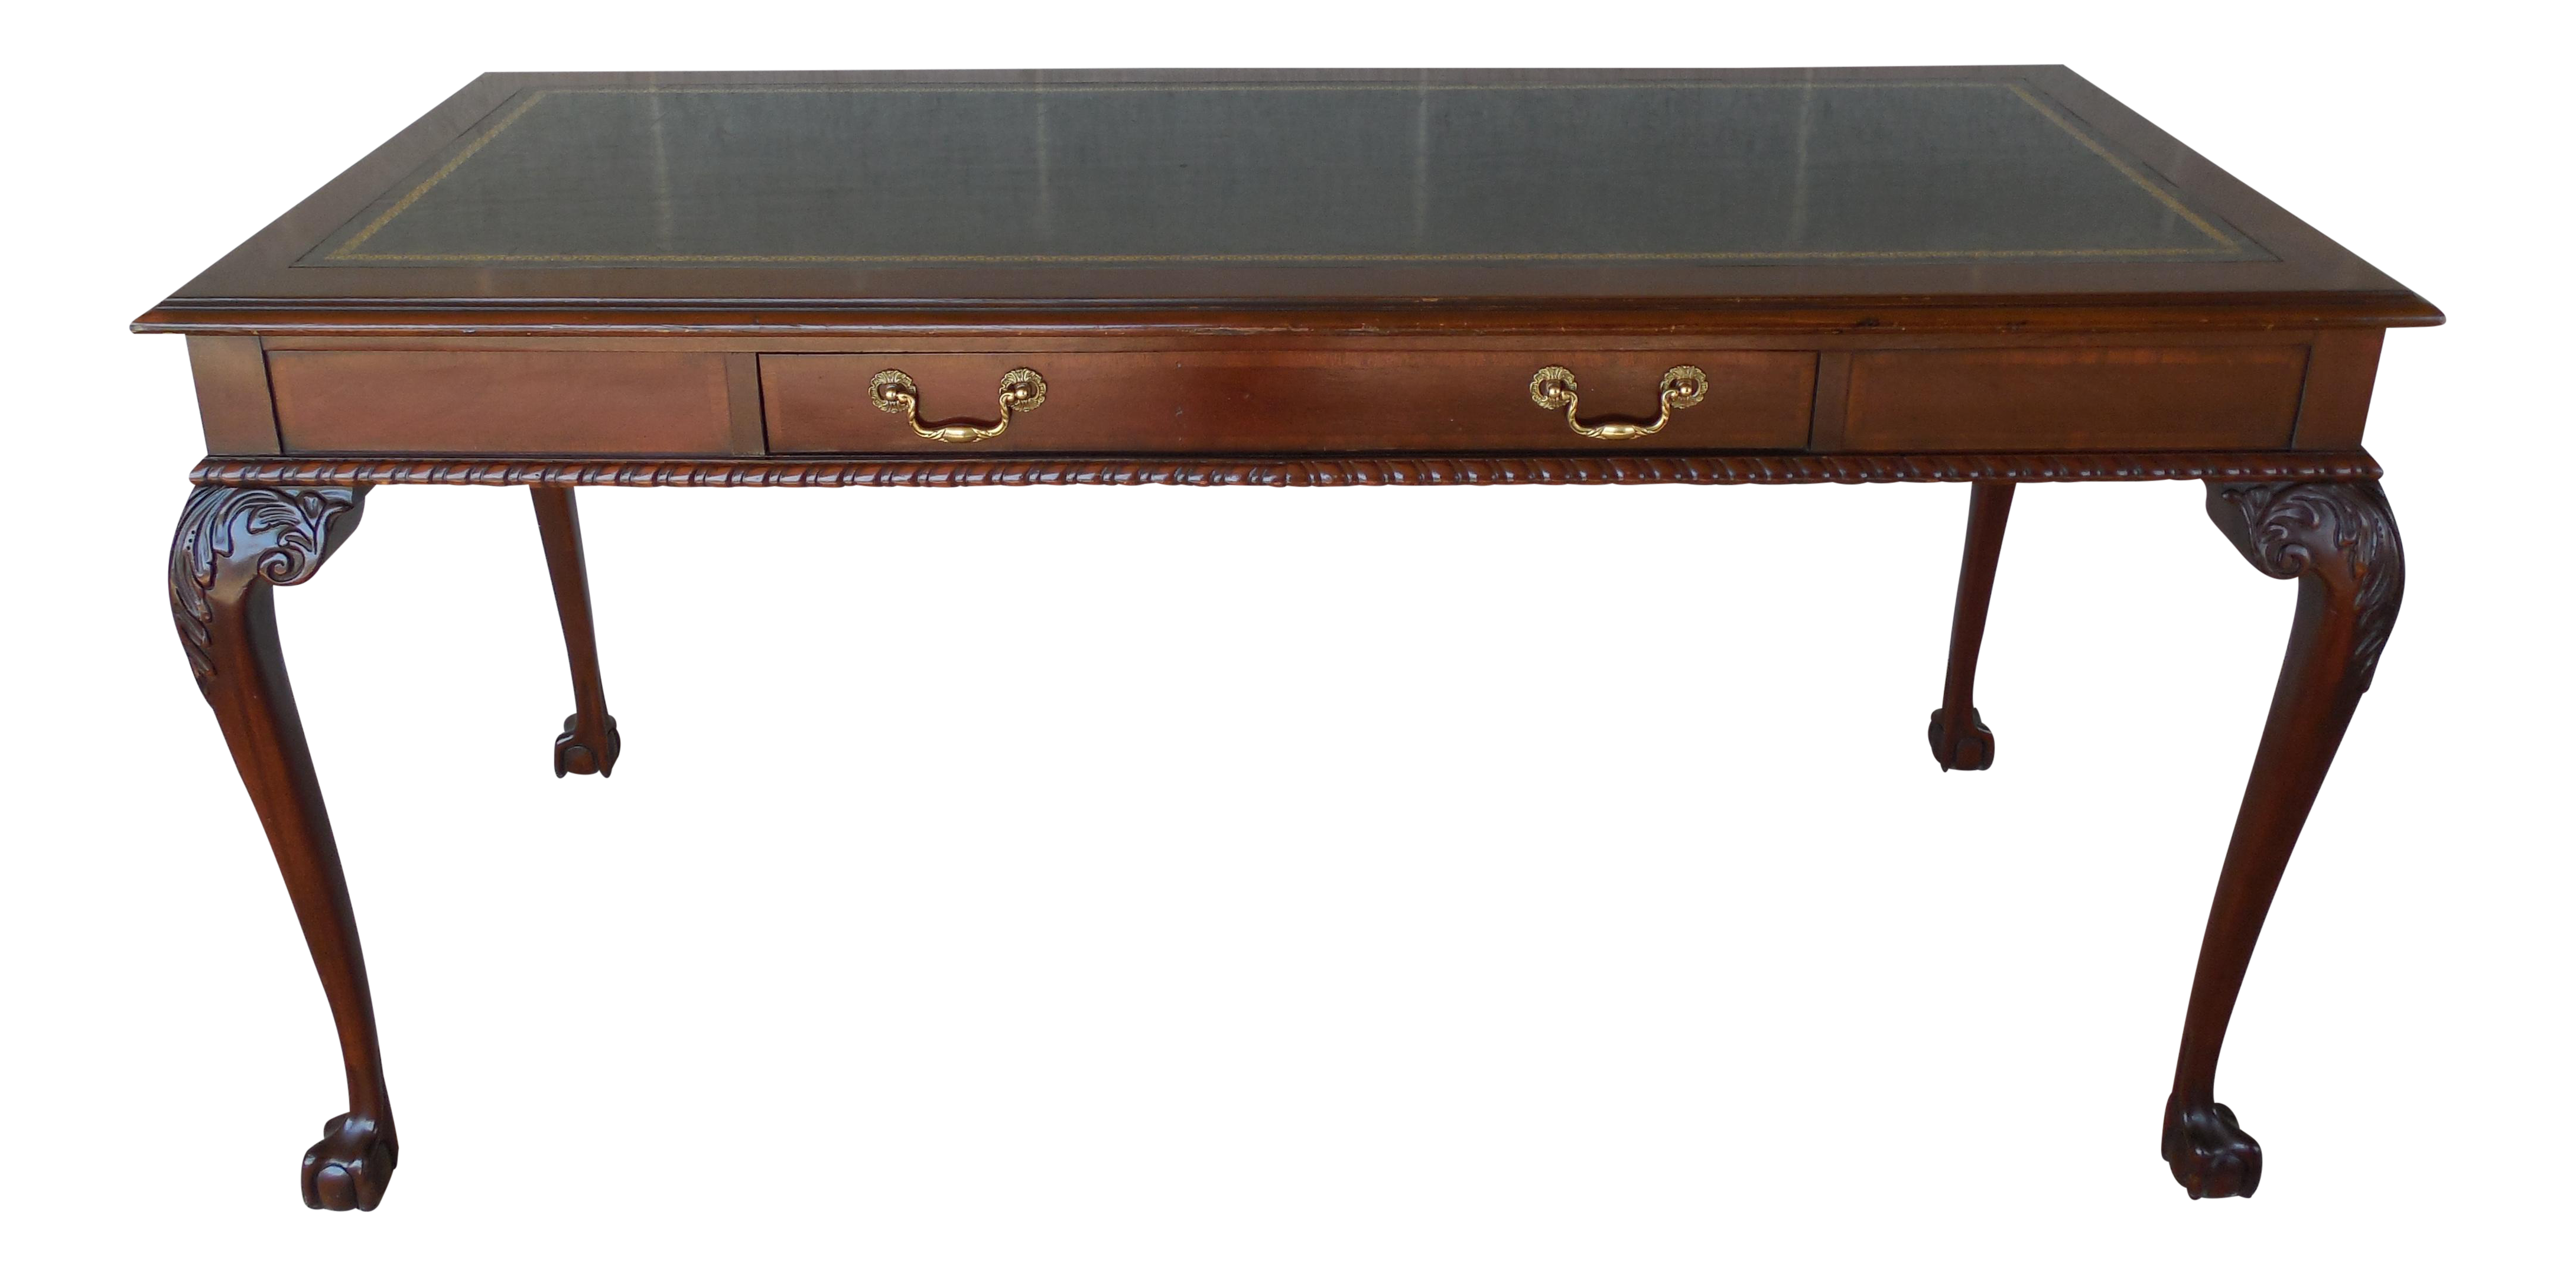 Drexel Dupont Plaza Georgian Style Ball Claw Foot Leather Top Writing Desk Chairish